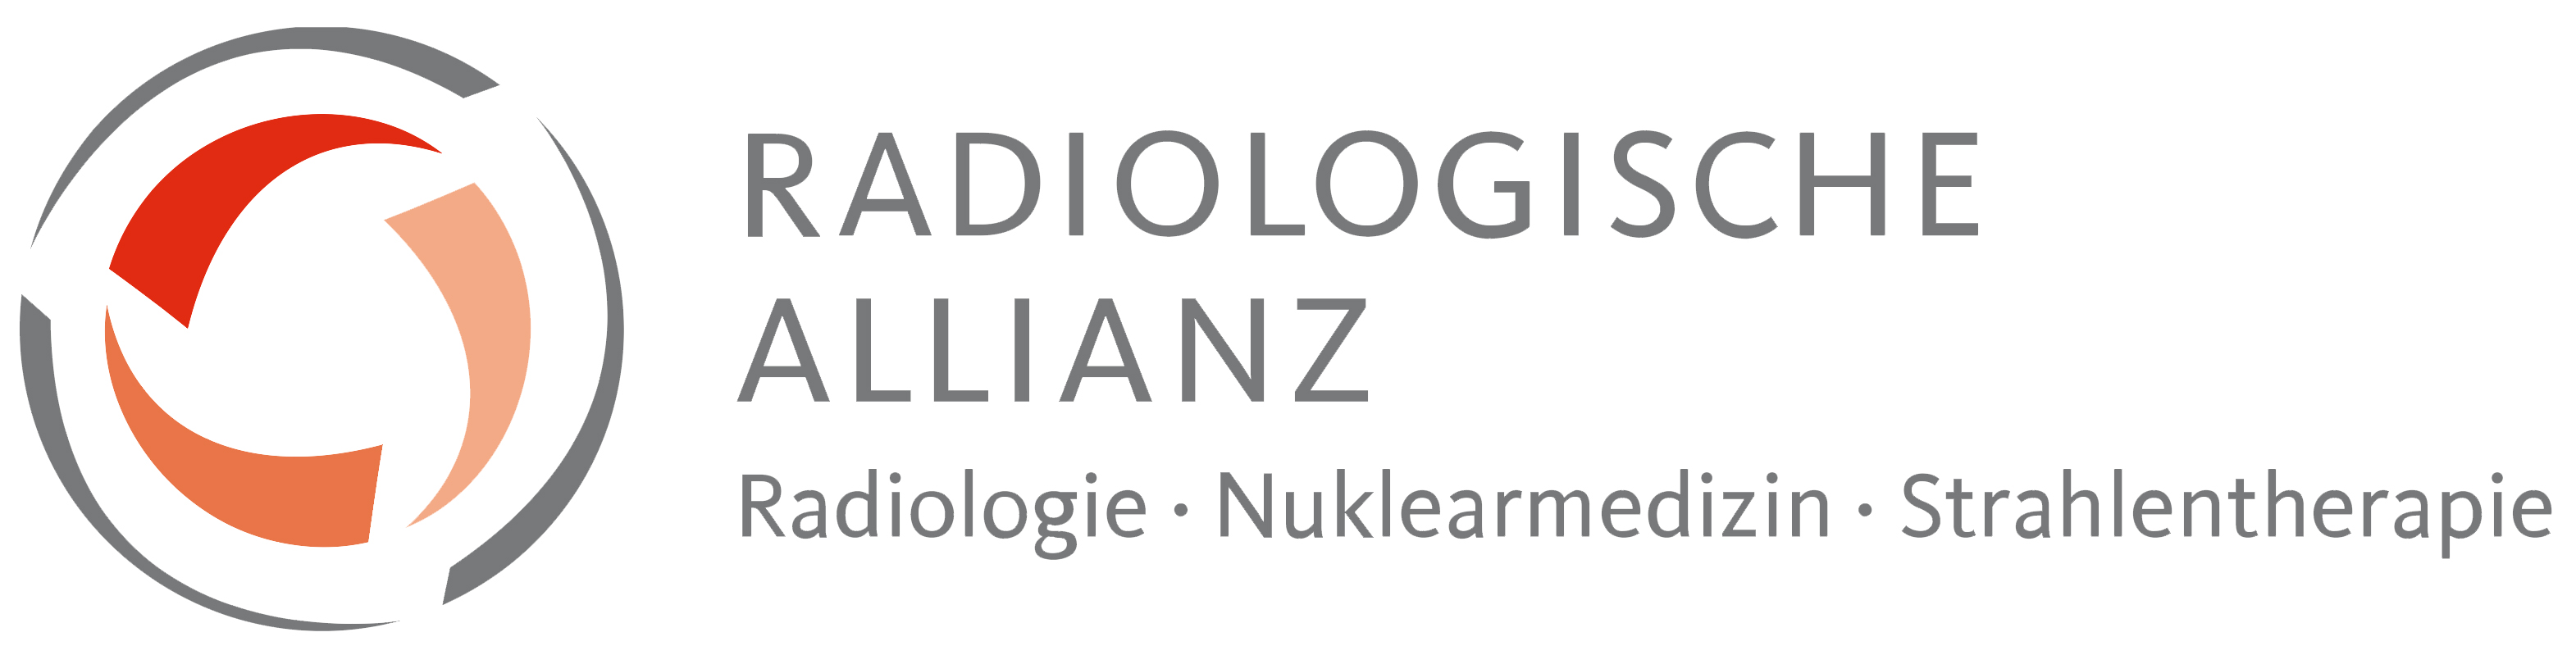 Radiologische Allianz Hamburg Logo